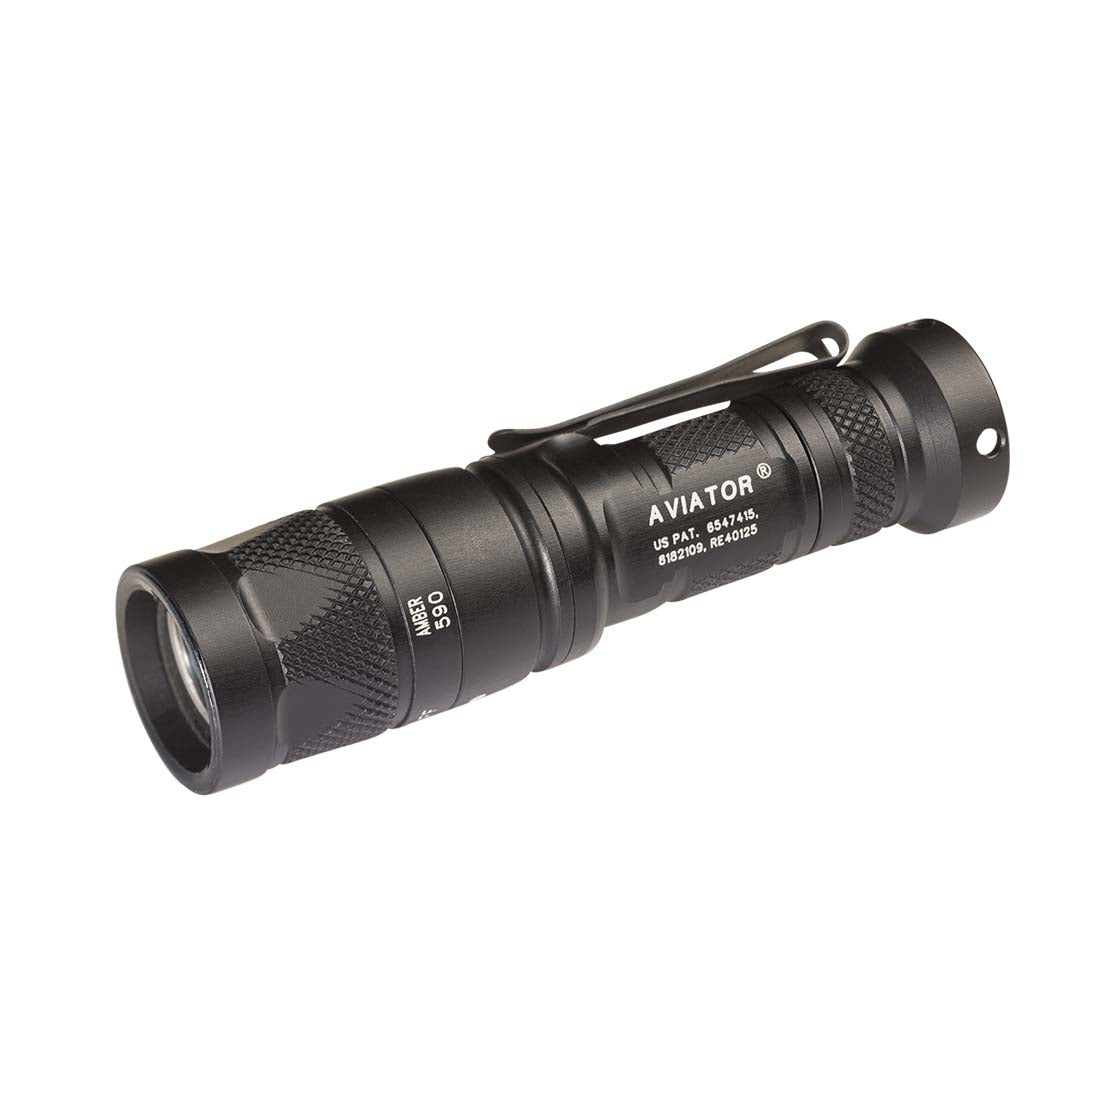 Surefire Aviator Flashlights with Dual Output Multi Spectrum Led